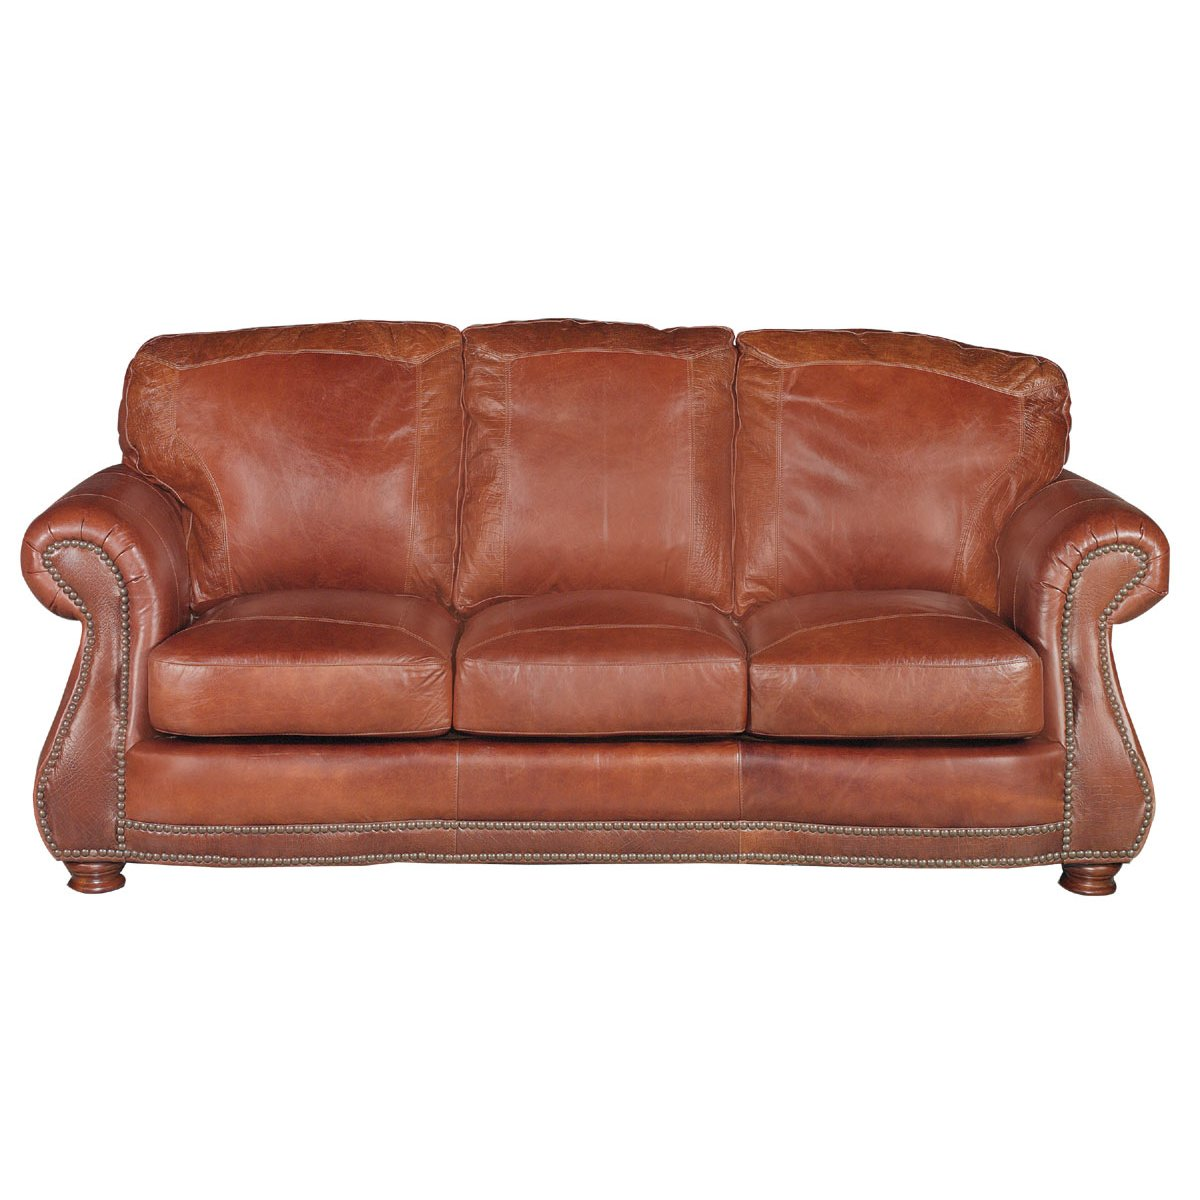 Classic Traditional Brandy Brown Leather Sofa